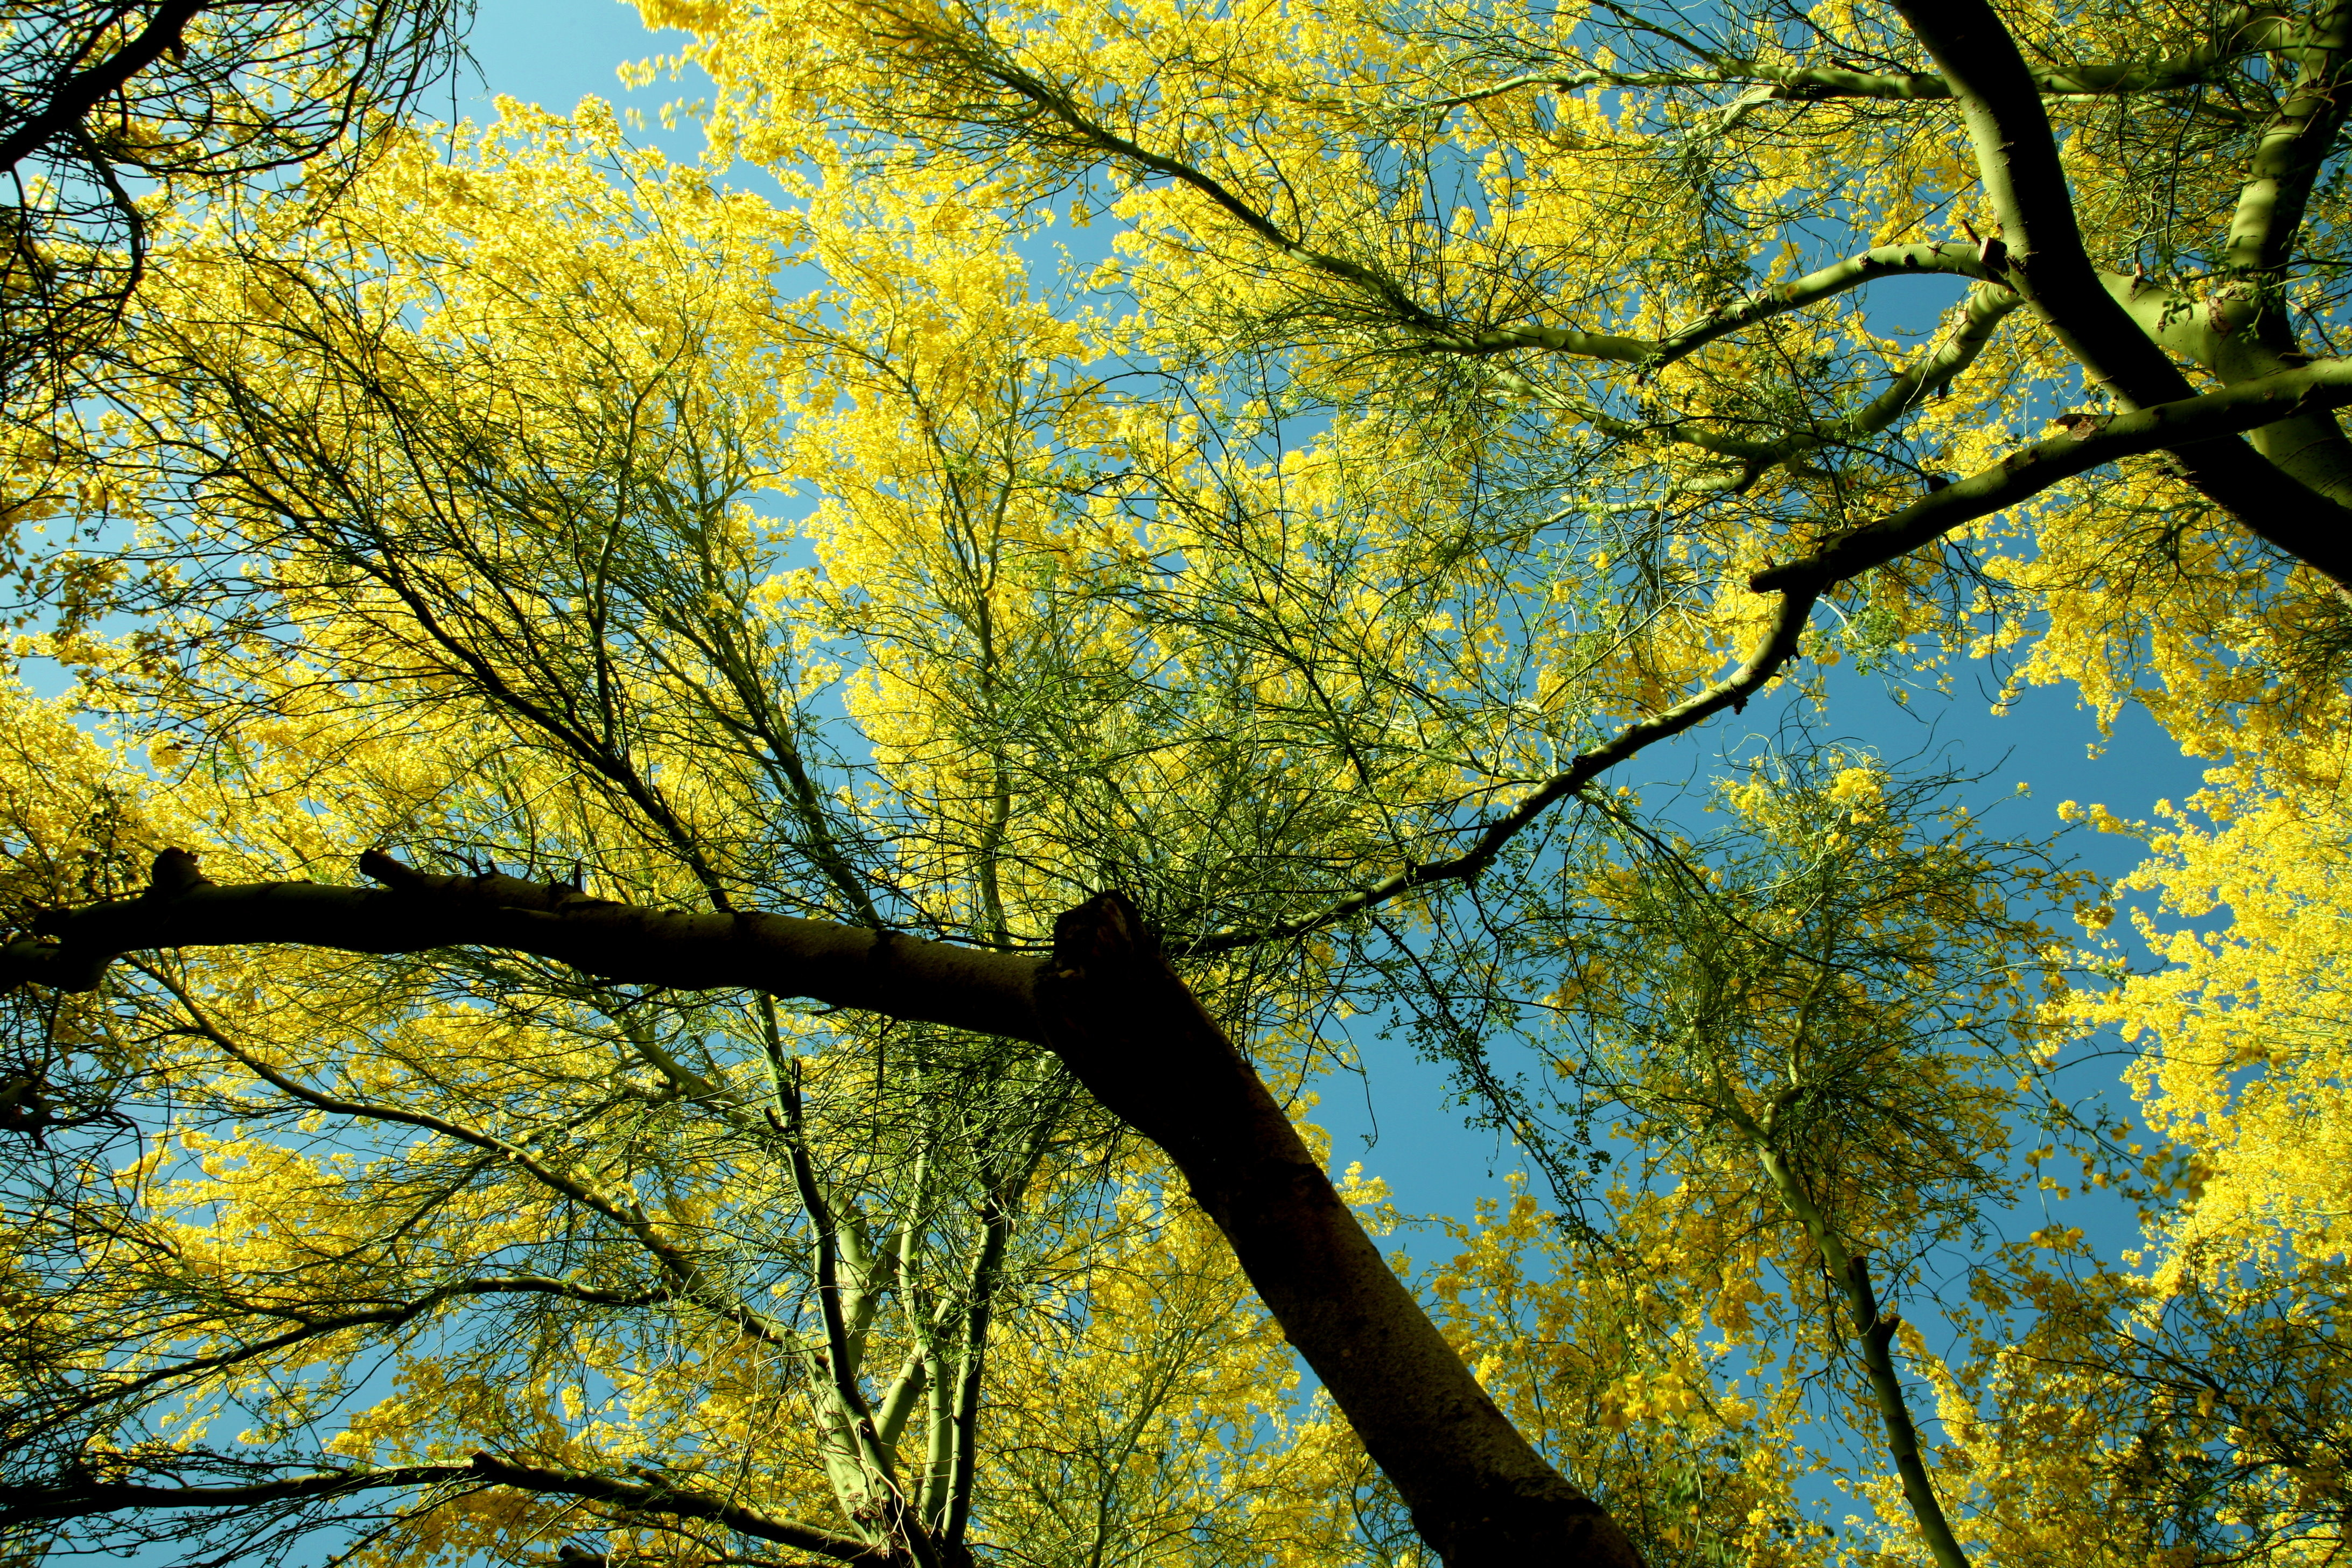 Paloverde tree in bloom useful for background